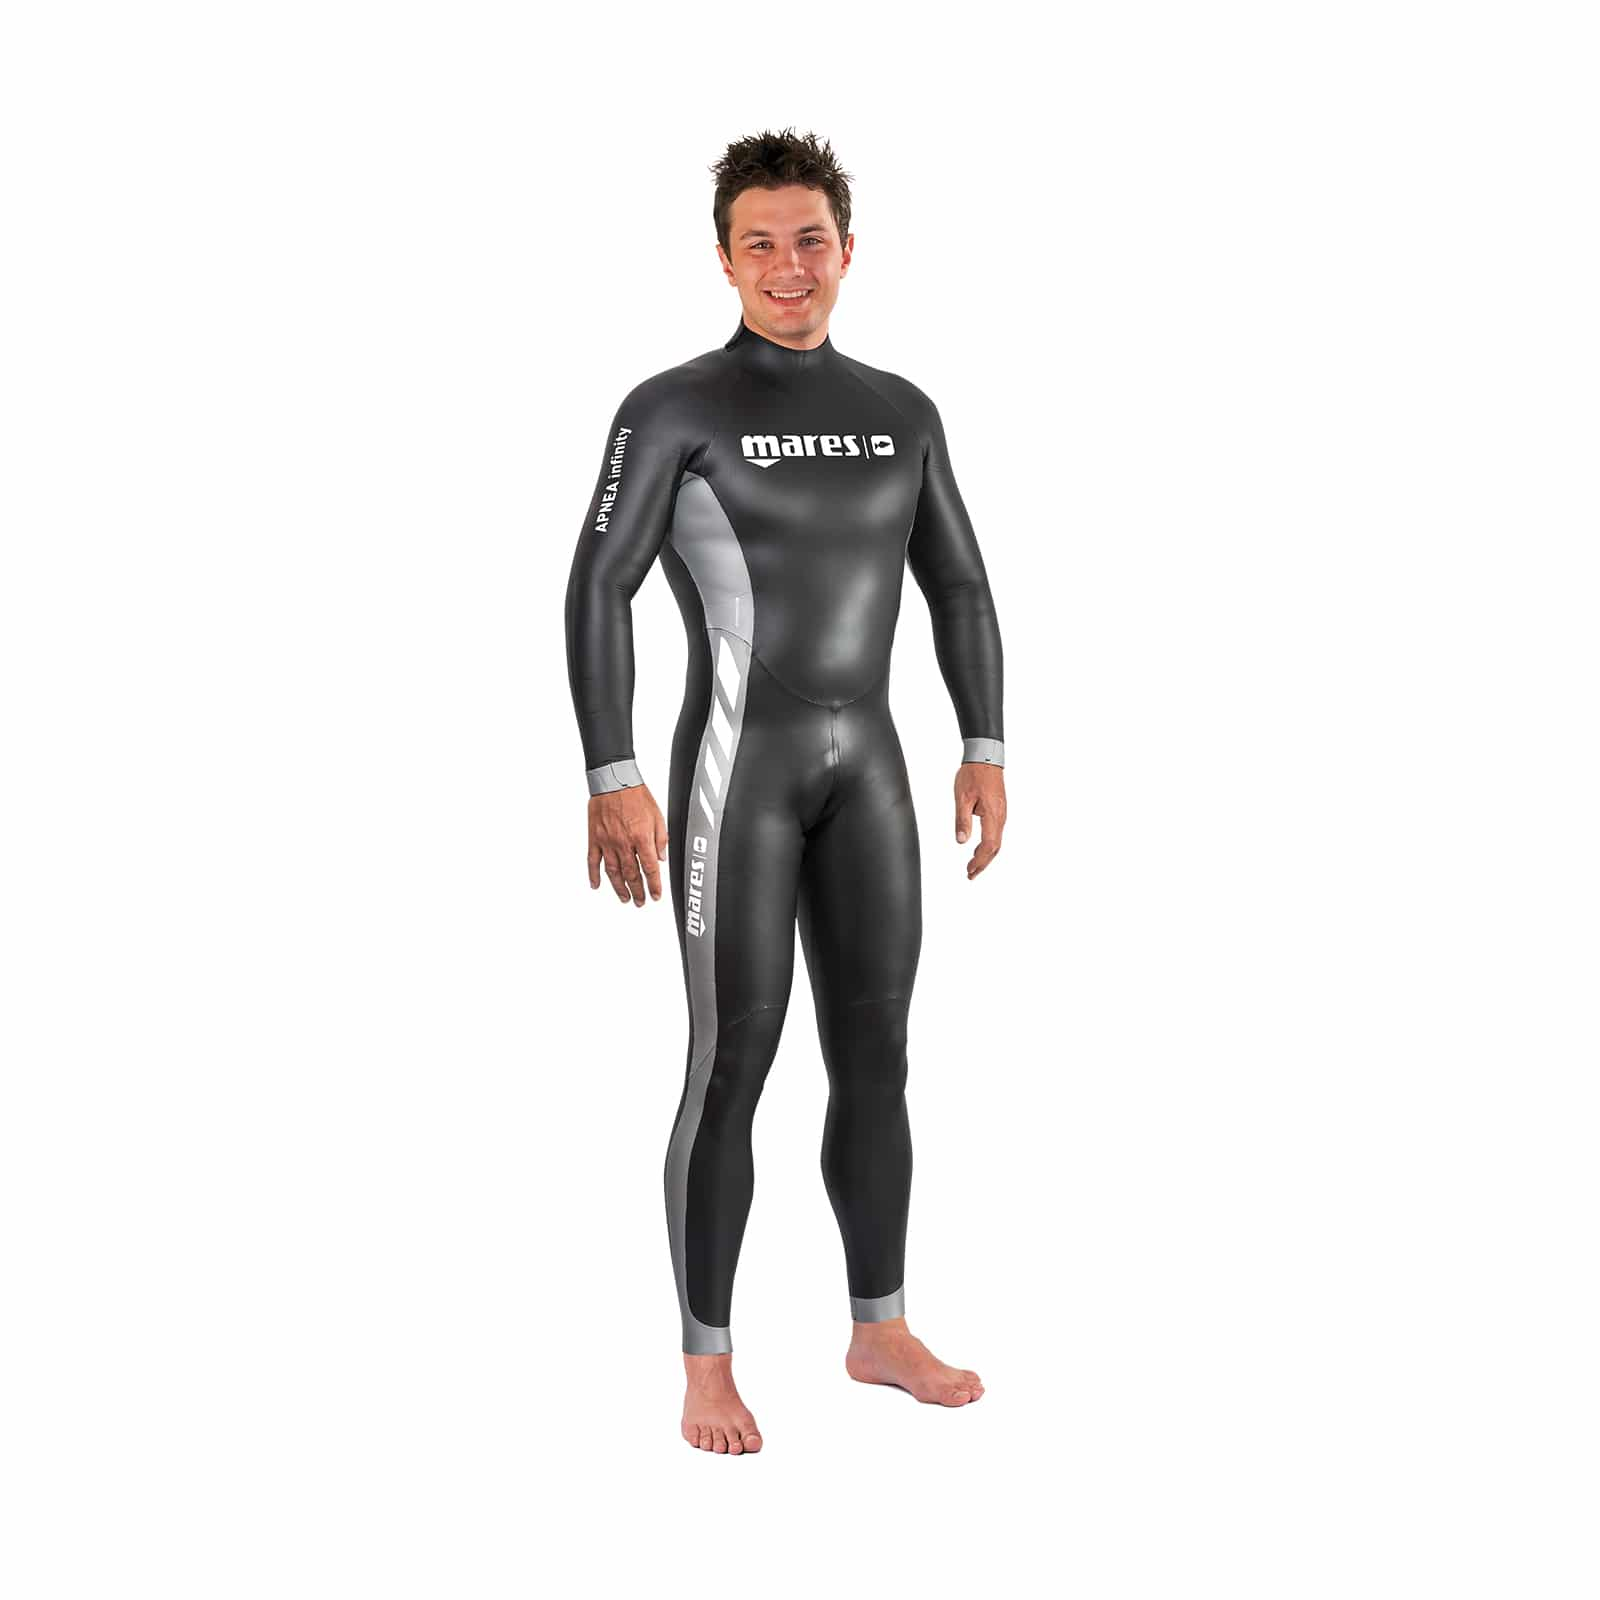 Mares Introduce Their New Freediving Line Deeperblue Com